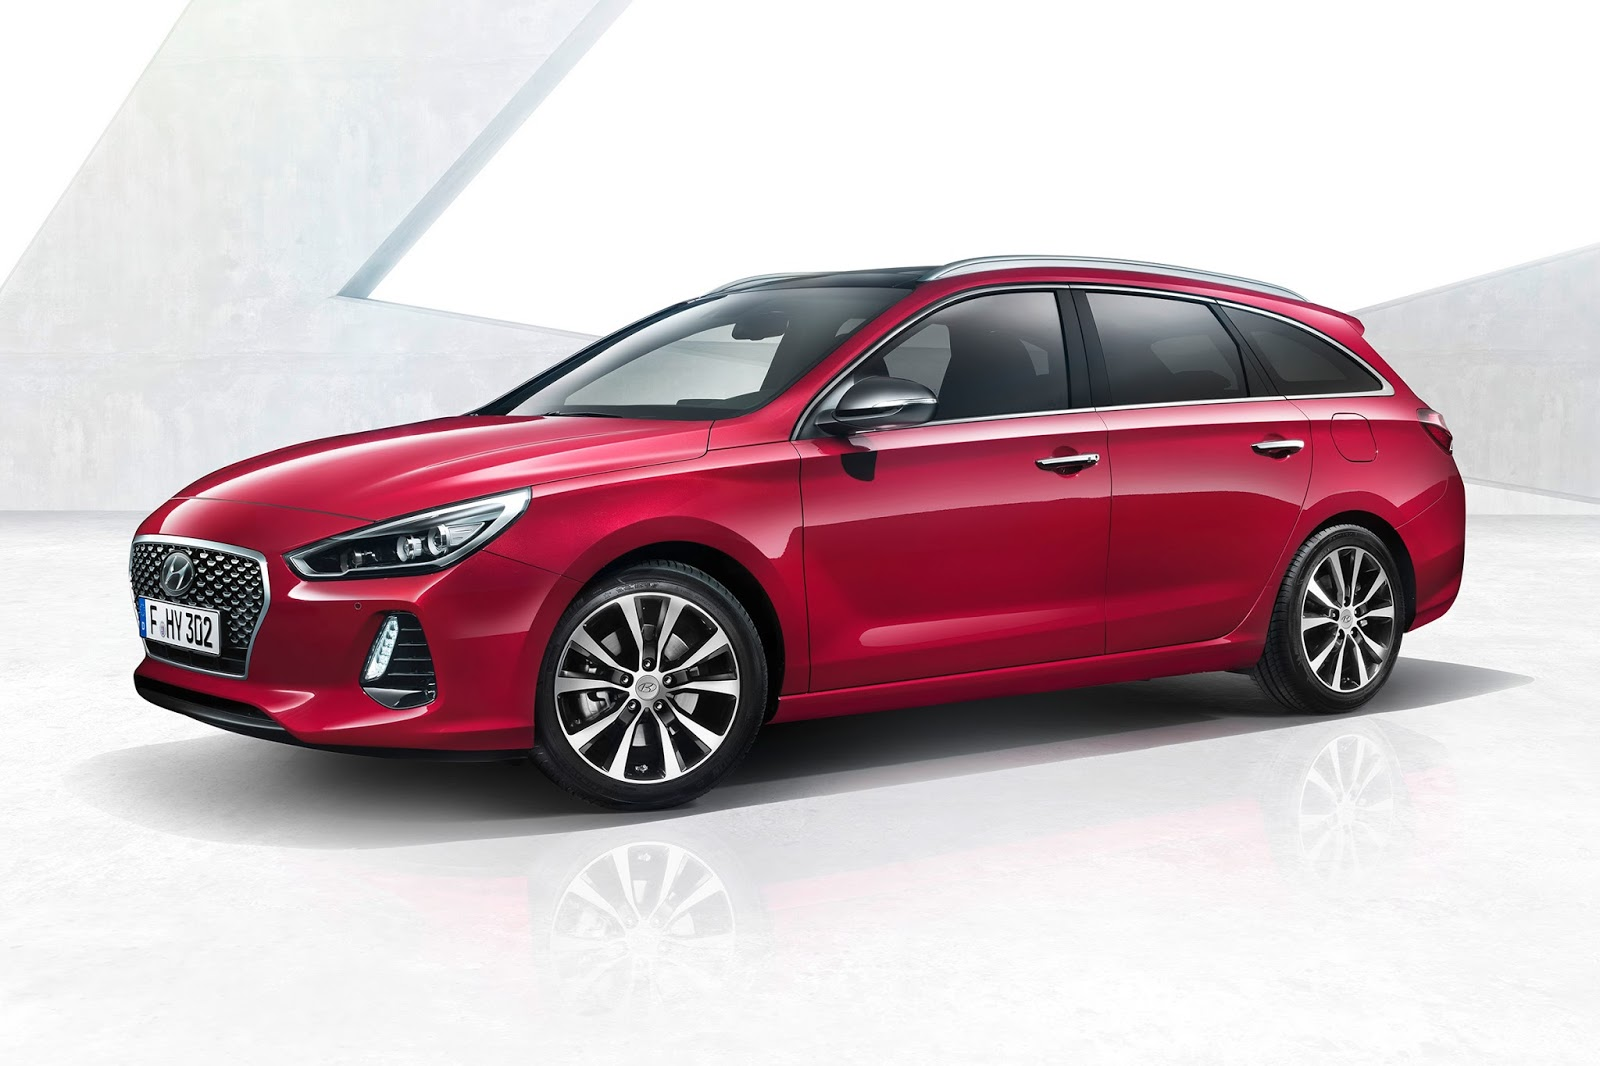 new hyundai i30 wagon is the elantra estate we ll never get carscoops. Black Bedroom Furniture Sets. Home Design Ideas